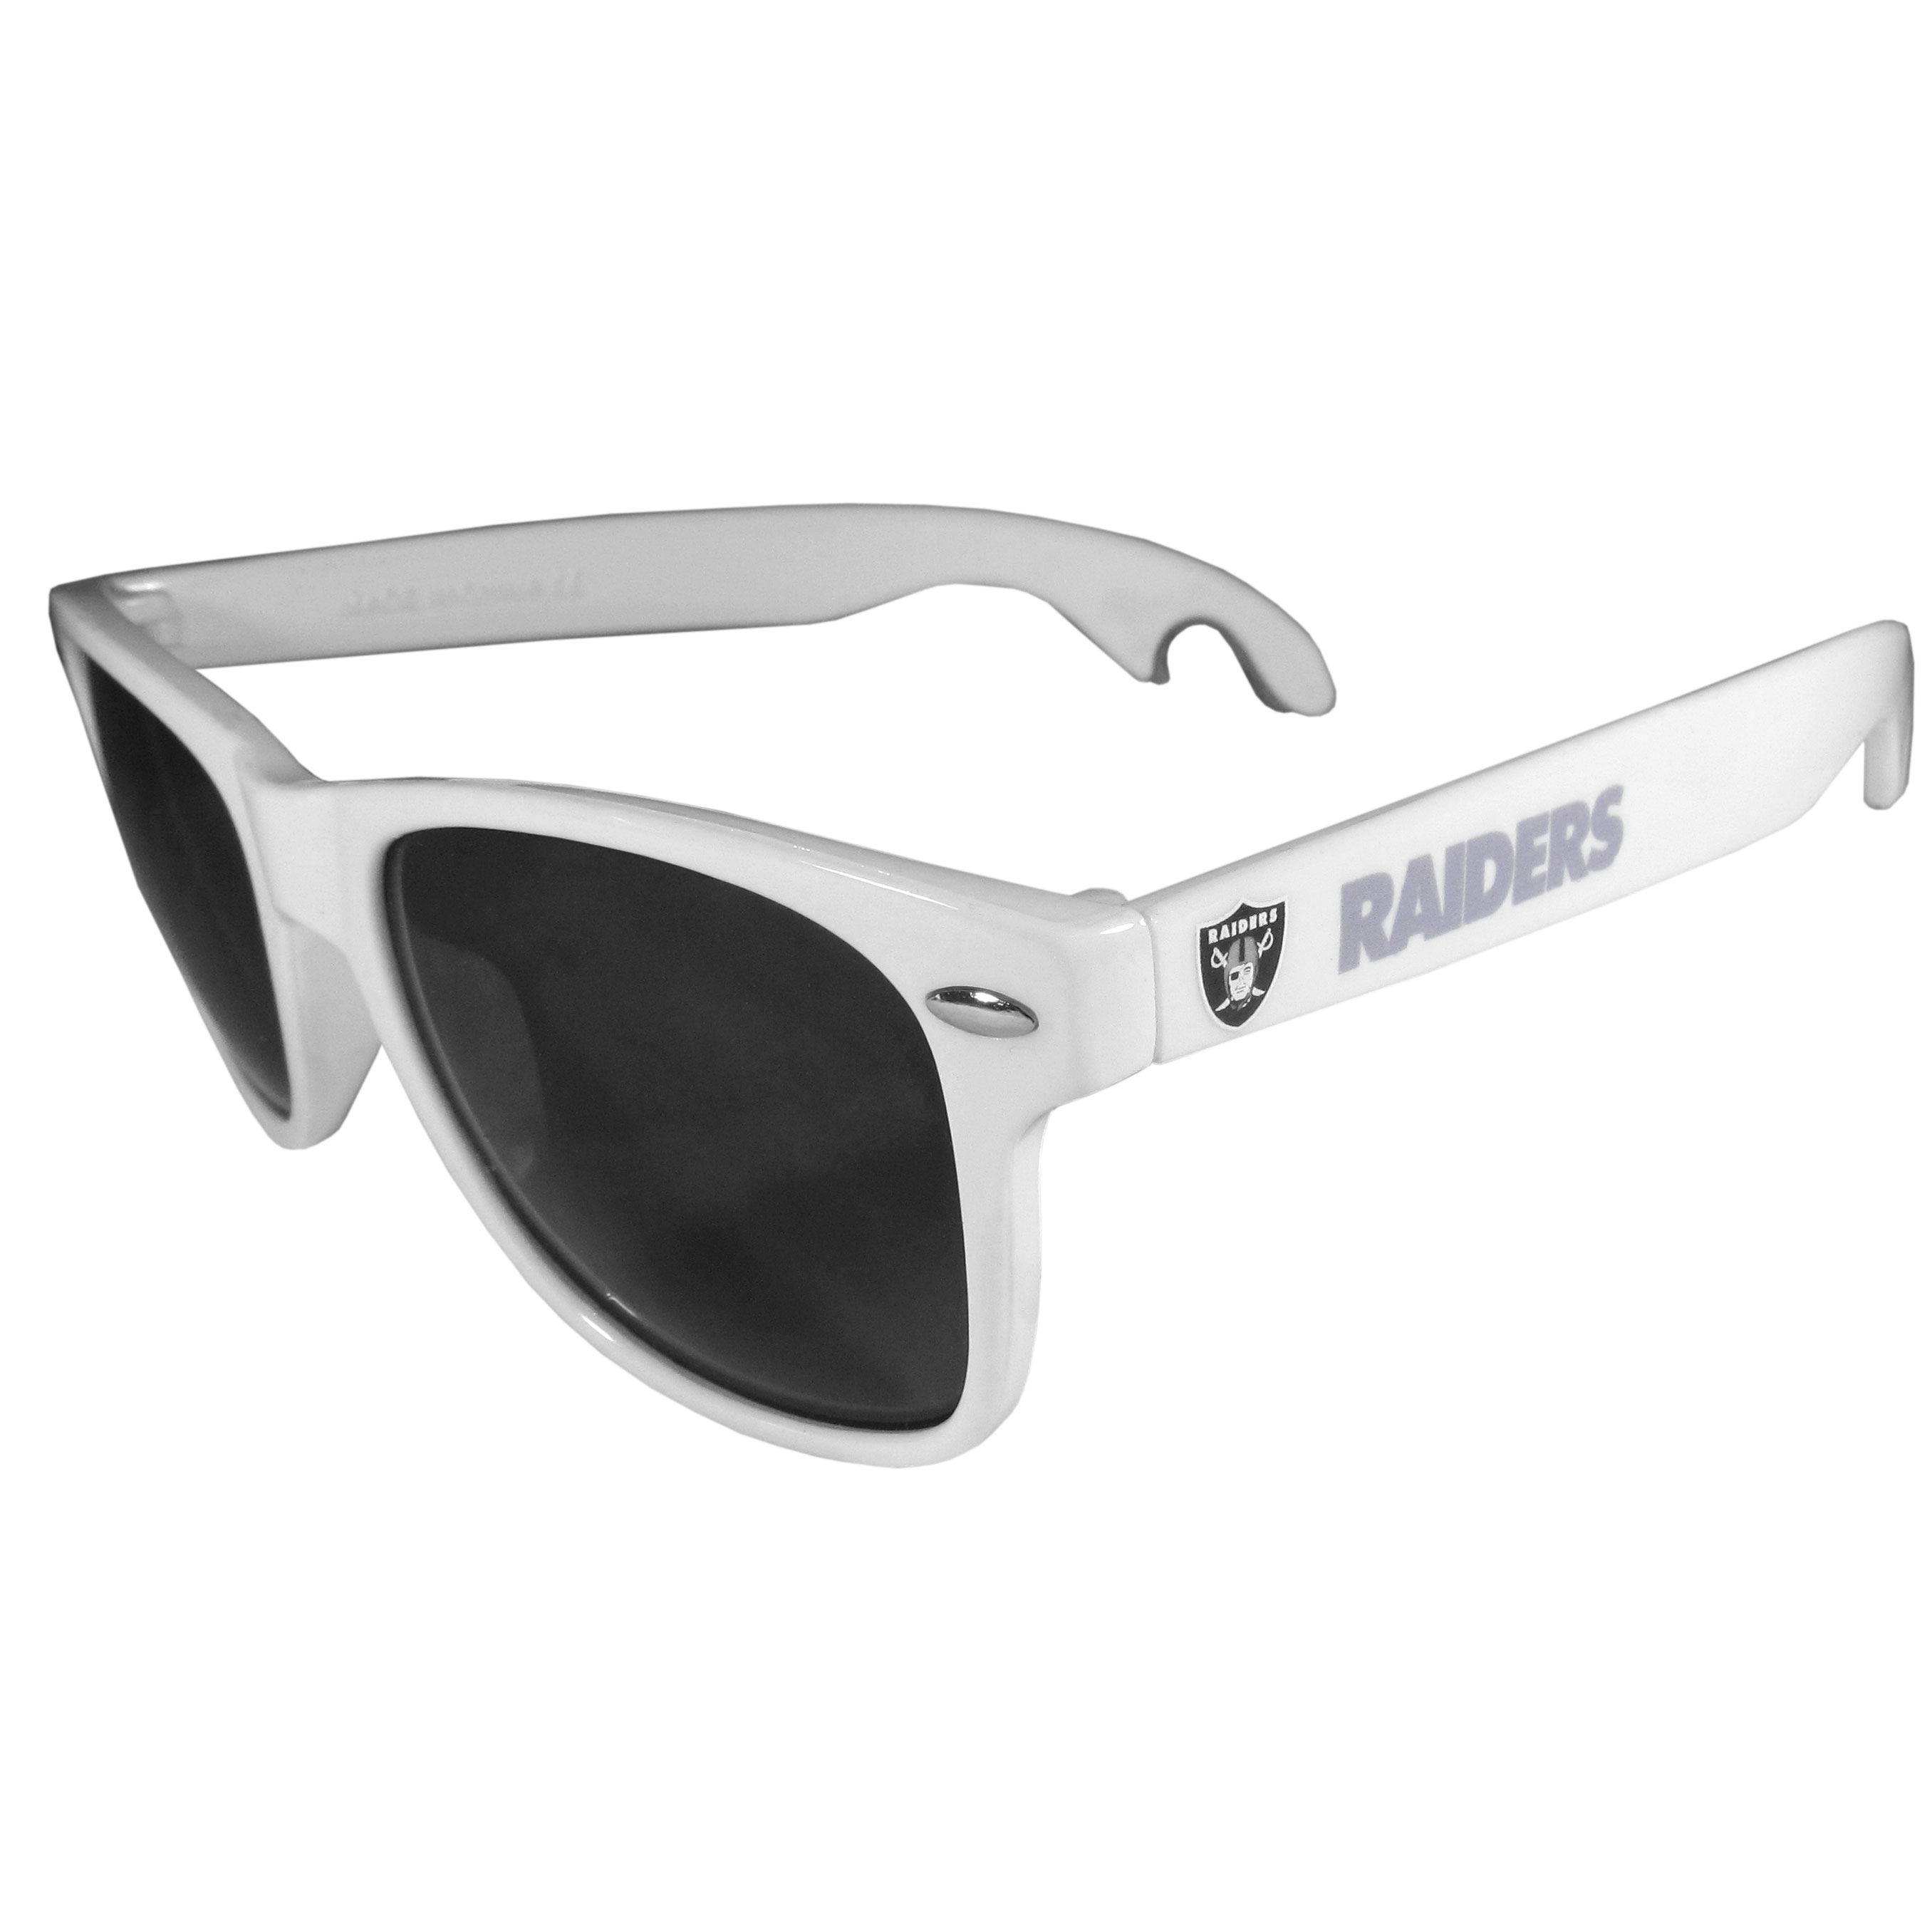 Oakland Raiders Beachfarer Bottle Opener Sunglasses, White - Seriously, these sunglasses open bottles! Keep the party going with these amazing Oakland Raiders bottle opener sunglasses. The stylish retro frames feature team designs on the arms and functional bottle openers on the end of the arms. Whether you are at the beach or having a backyard BBQ on game day, these shades will keep your eyes protected with 100% UVA/UVB protection and keep you hydrated with the handy bottle opener arms.